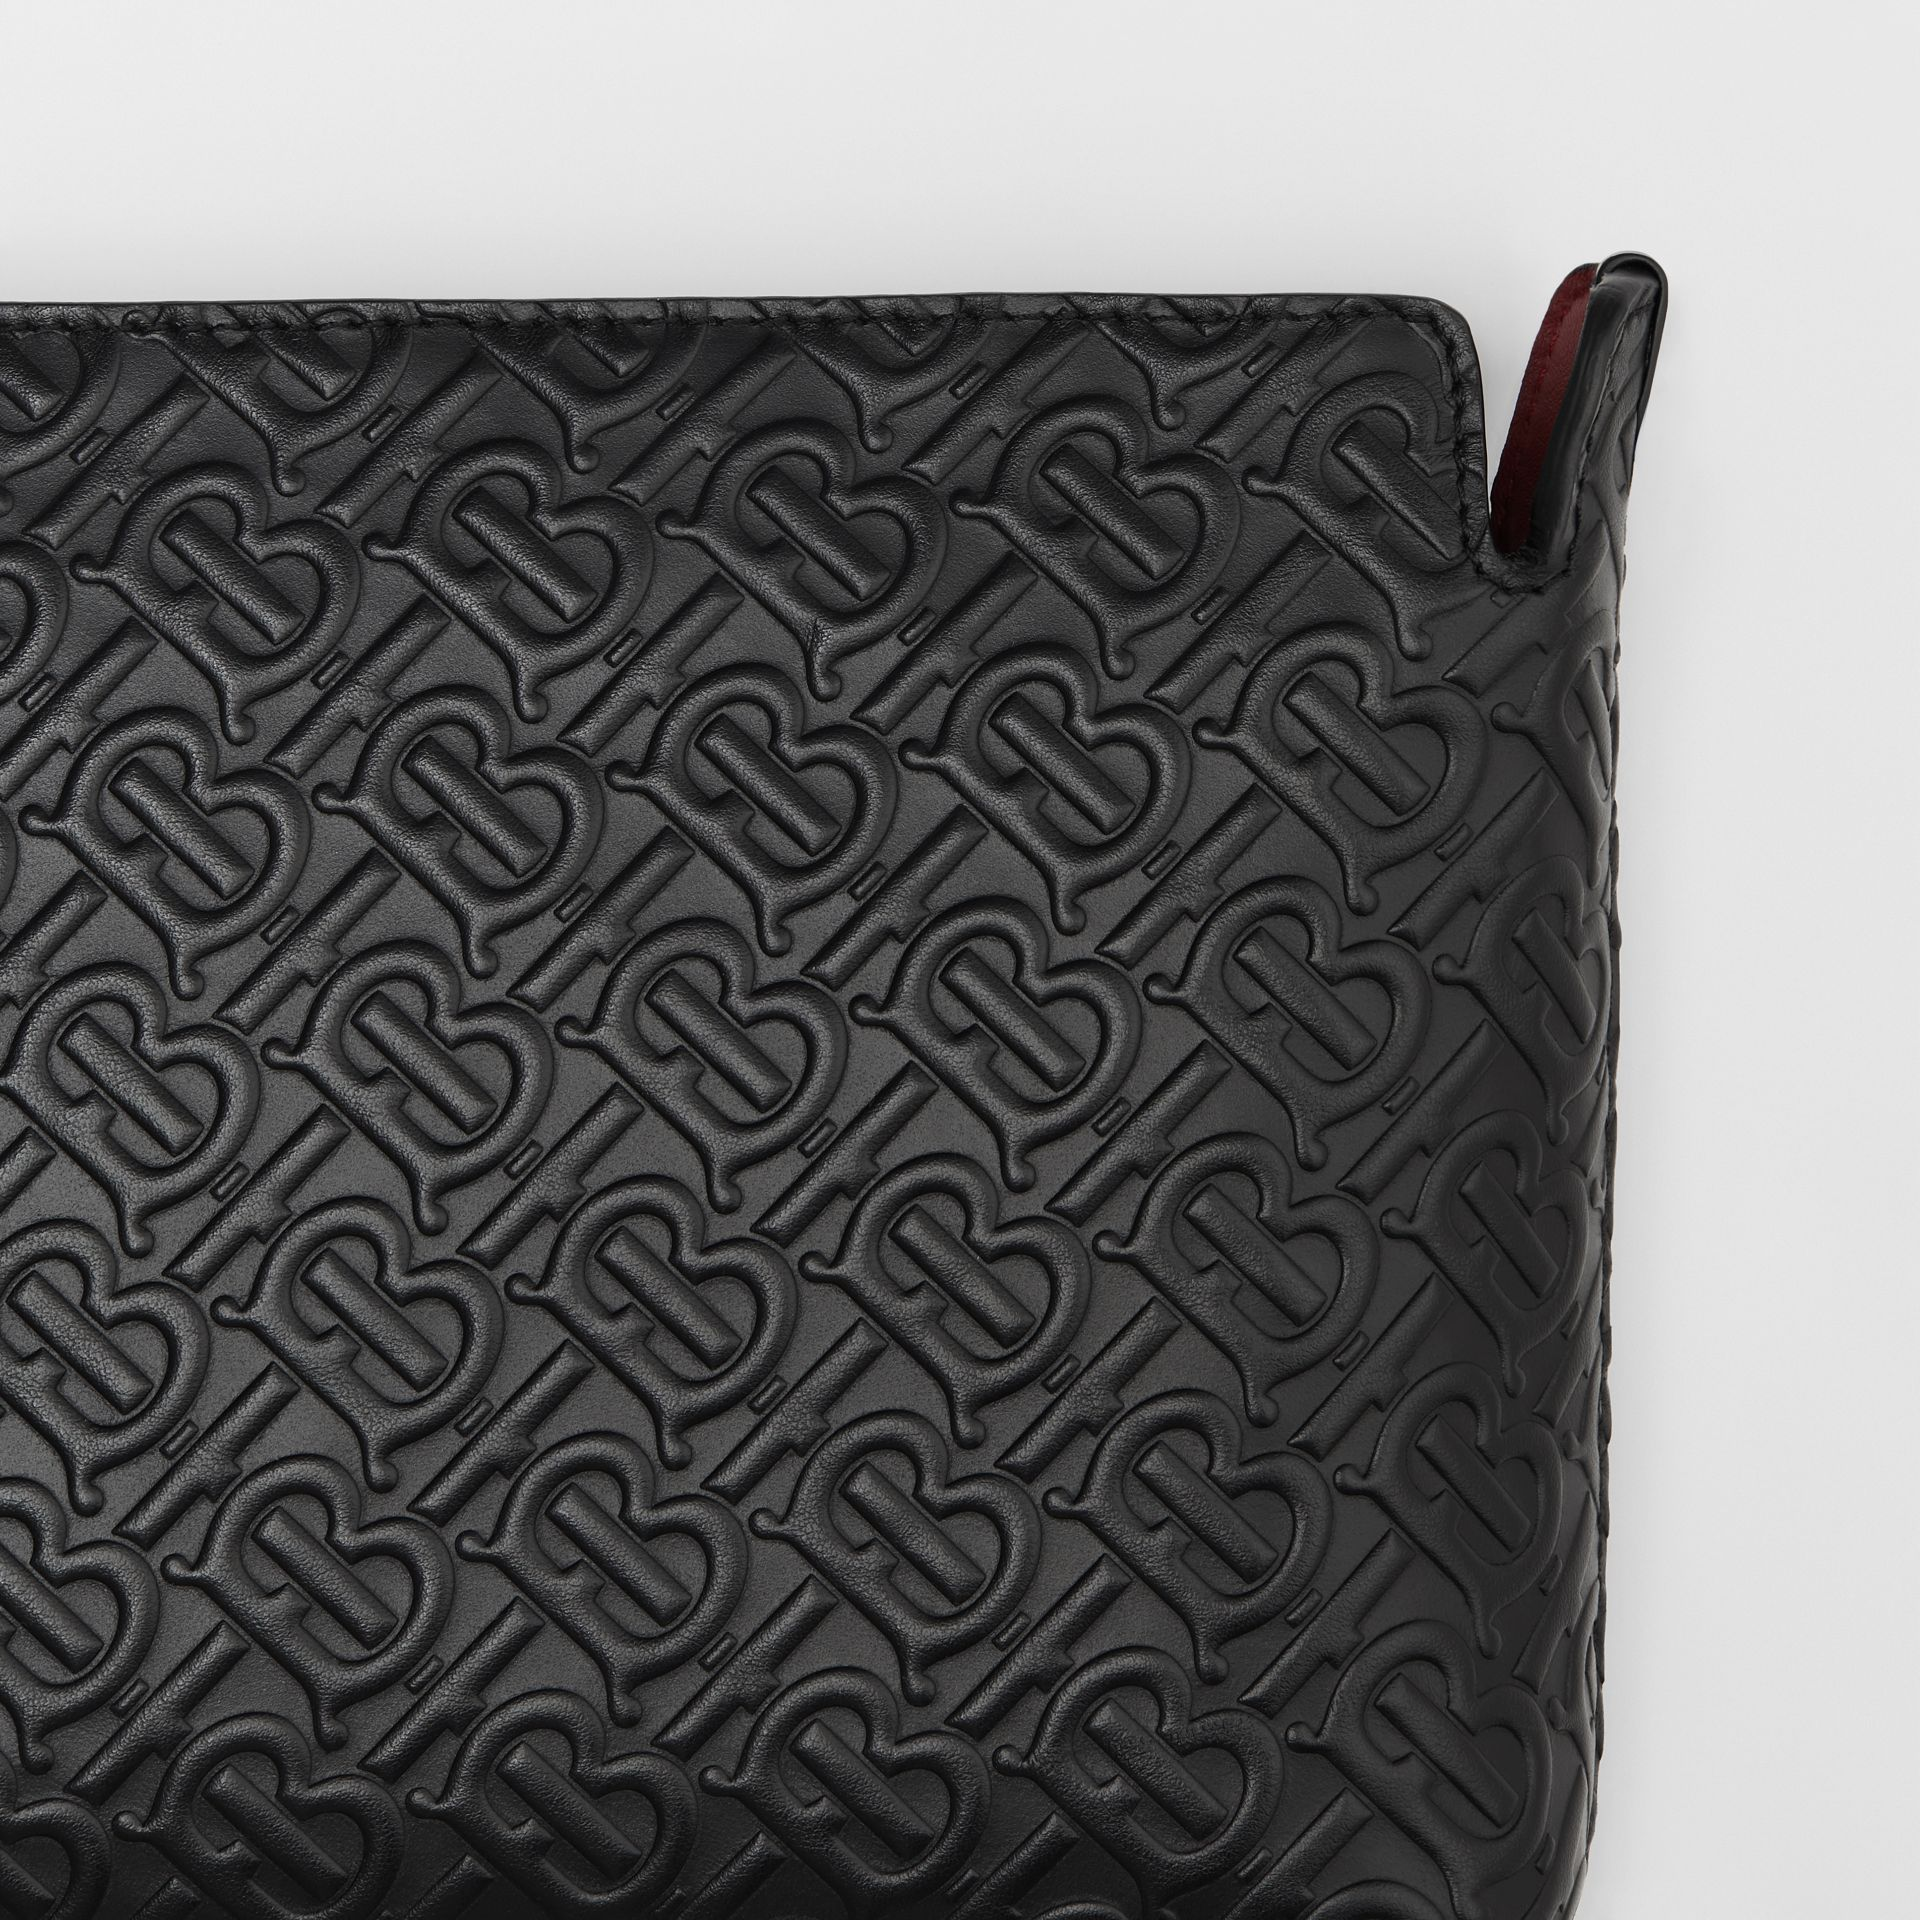 Medium Monogram Leather Clutch in Black - Women | Burberry Hong Kong - gallery image 1